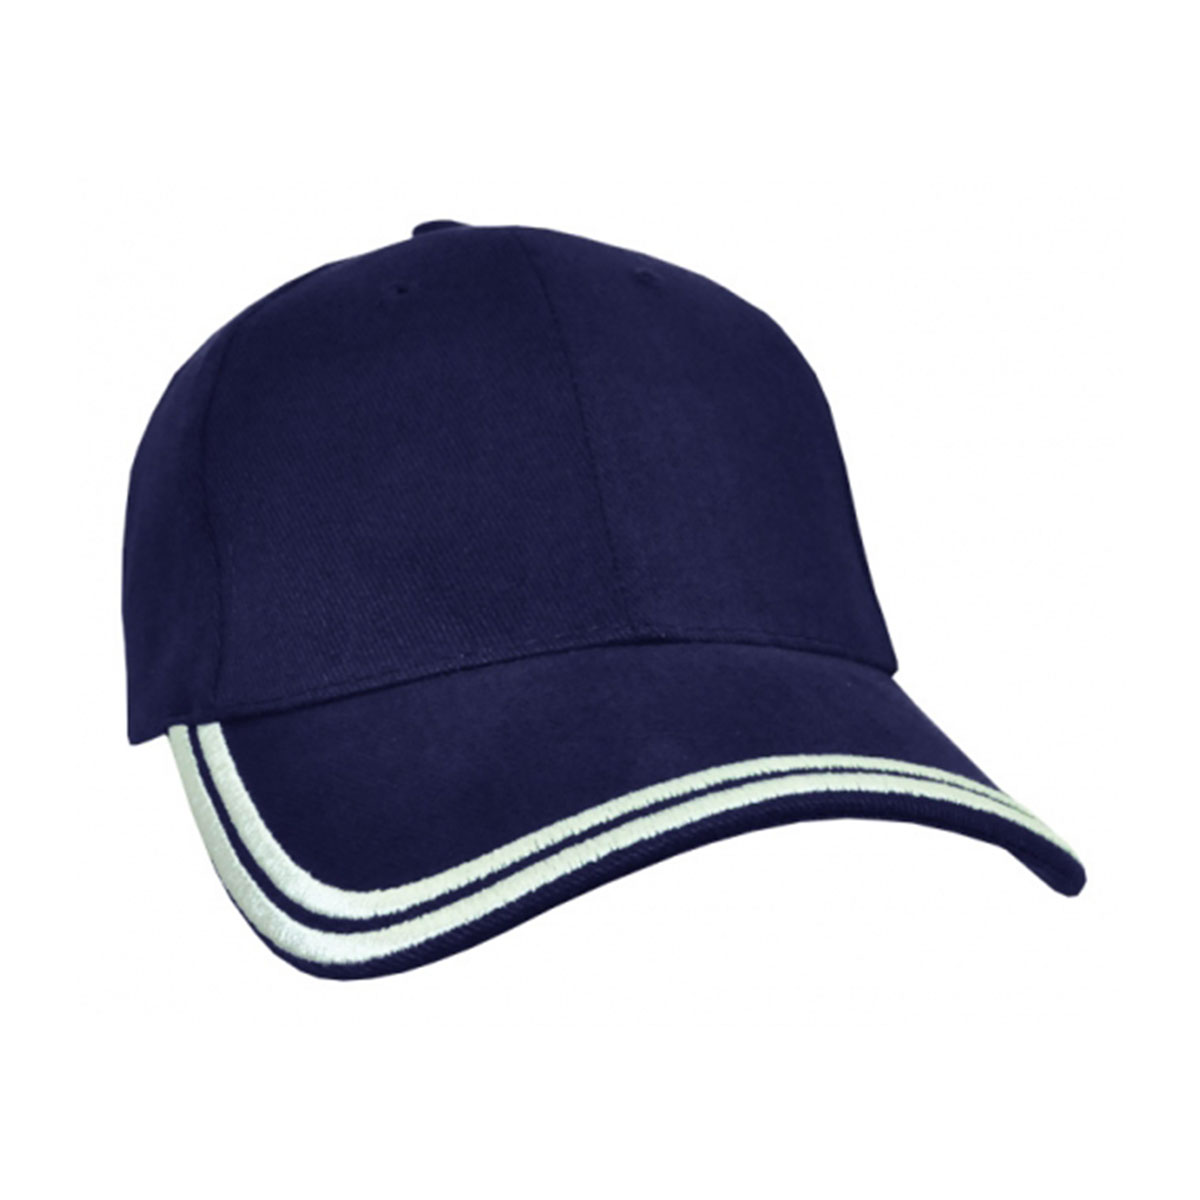 HBC Double Piping Cap-Navy / White